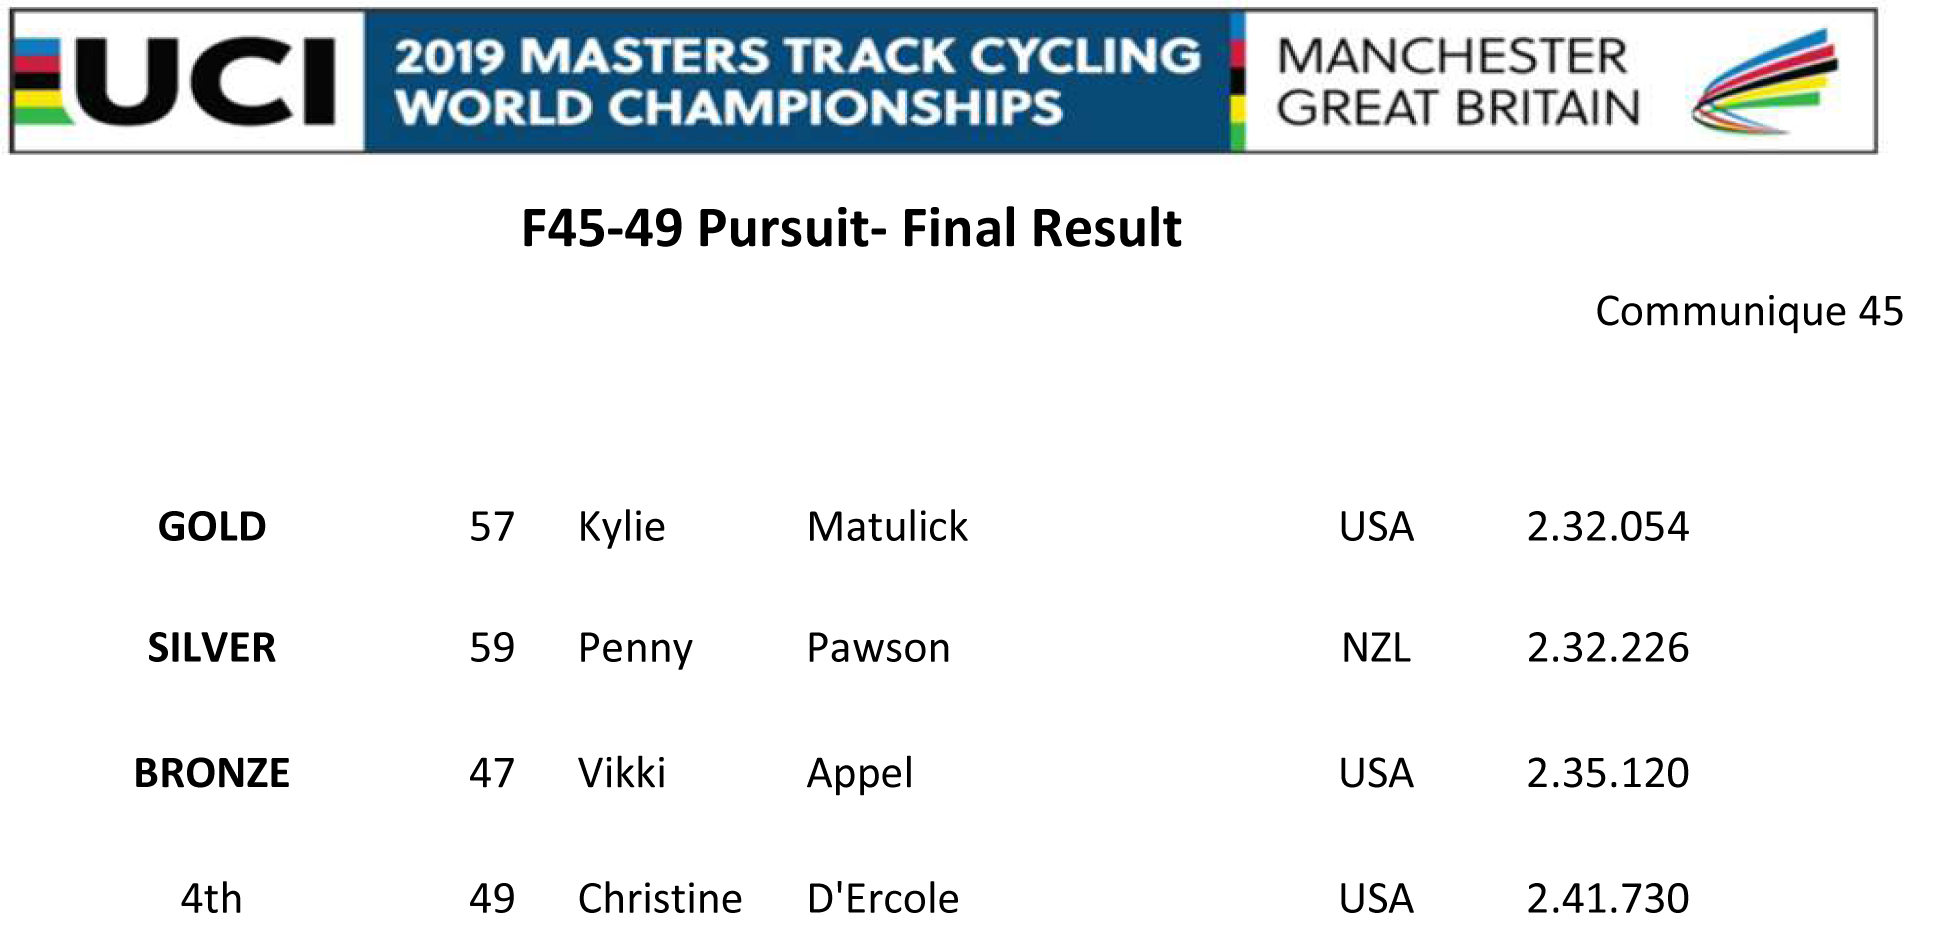 F4549 PURSUIT FINAL RESULT